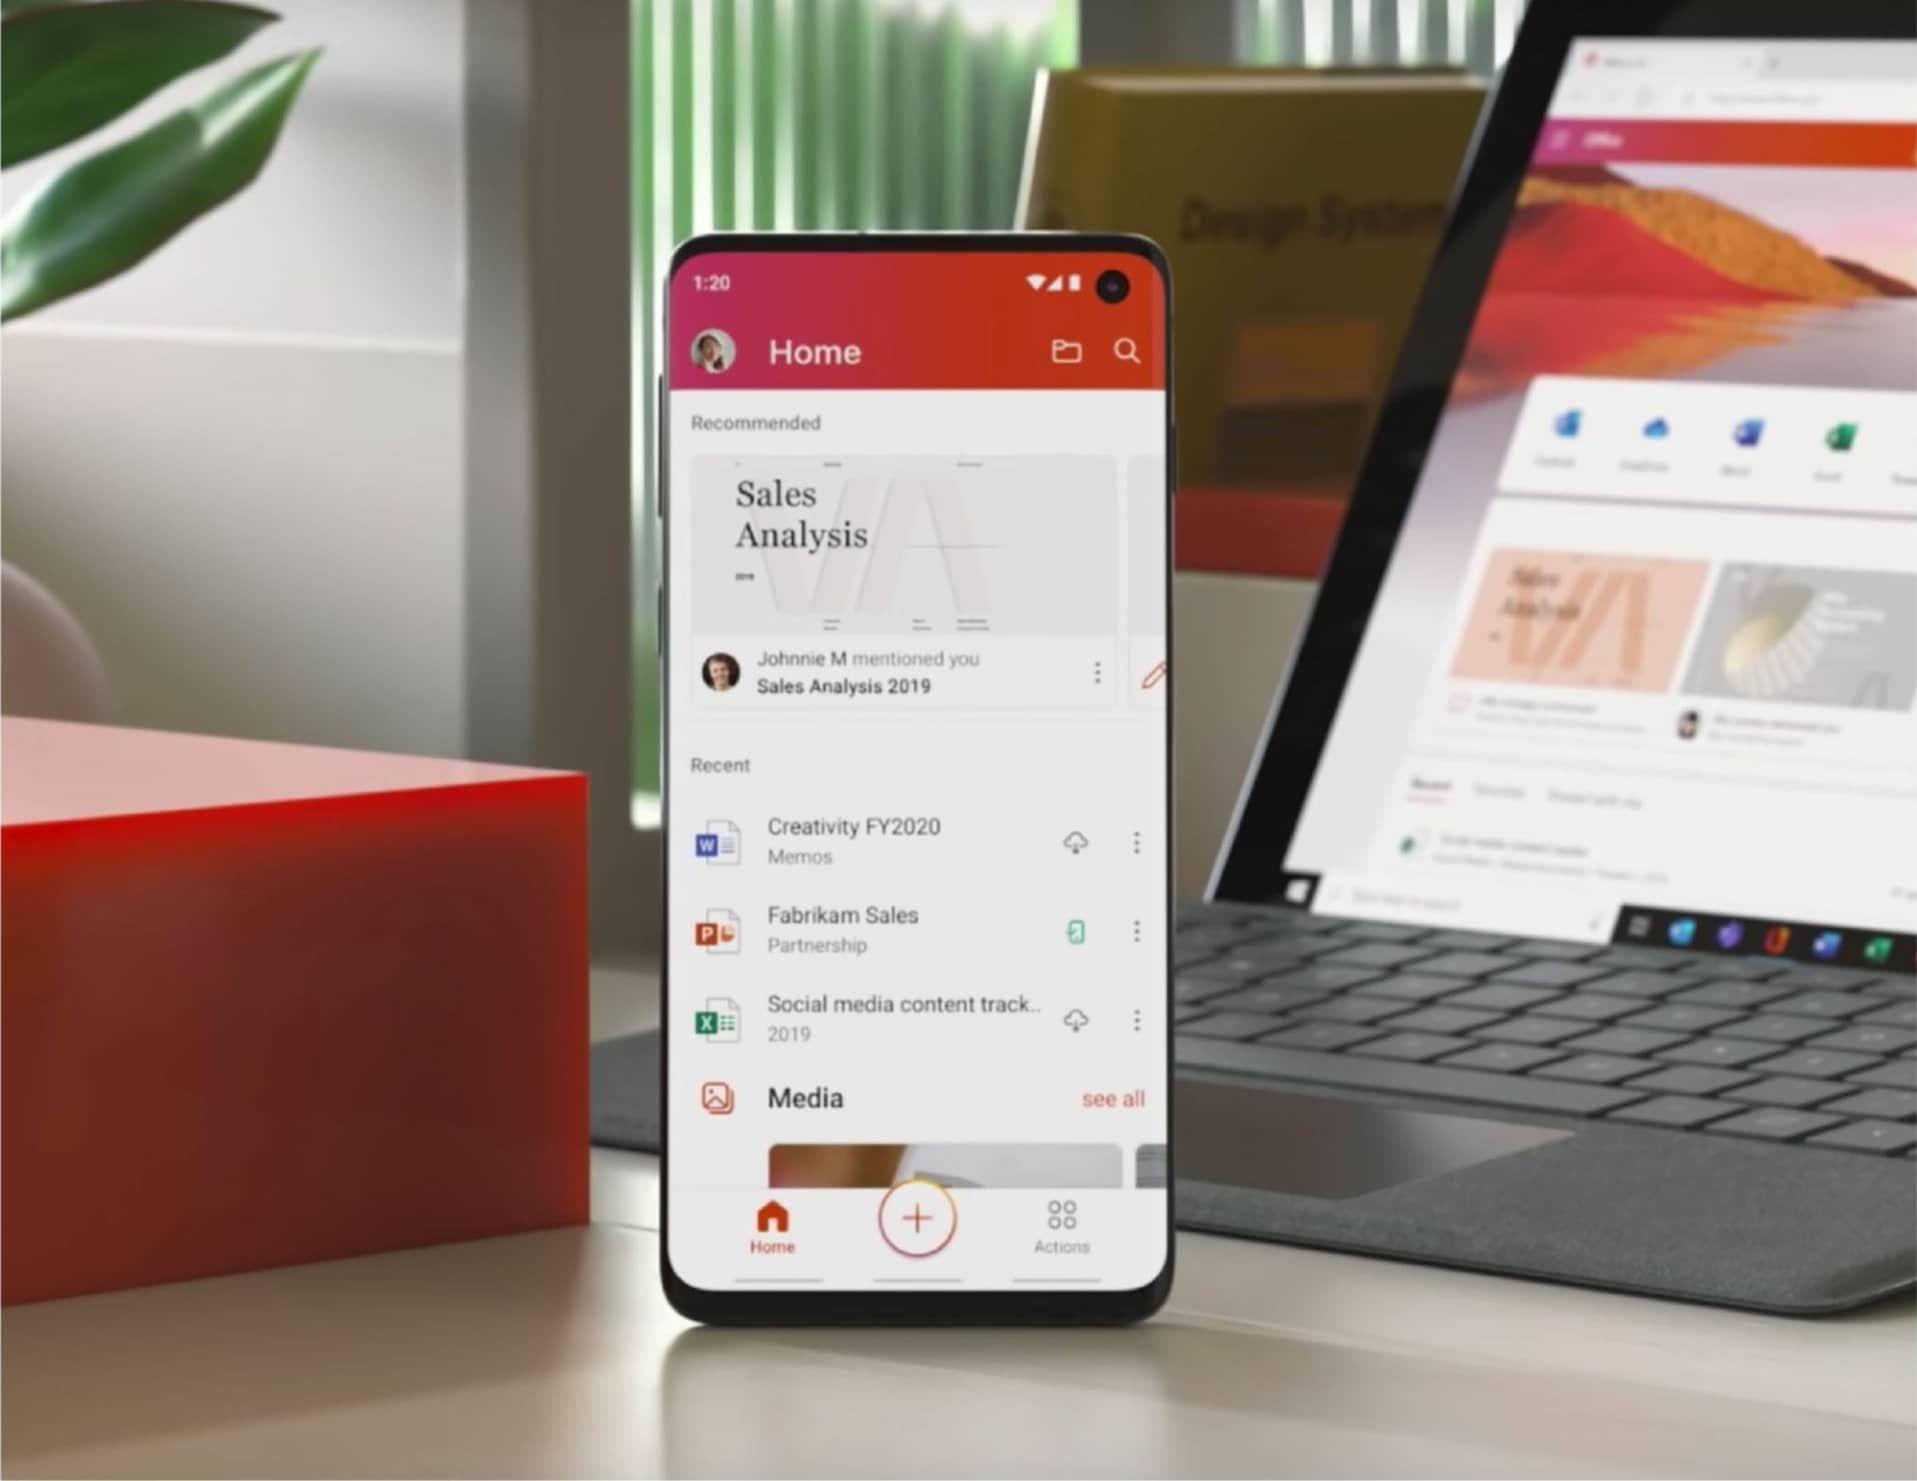 Microsoft launched the Microsoft Office app for iOS and